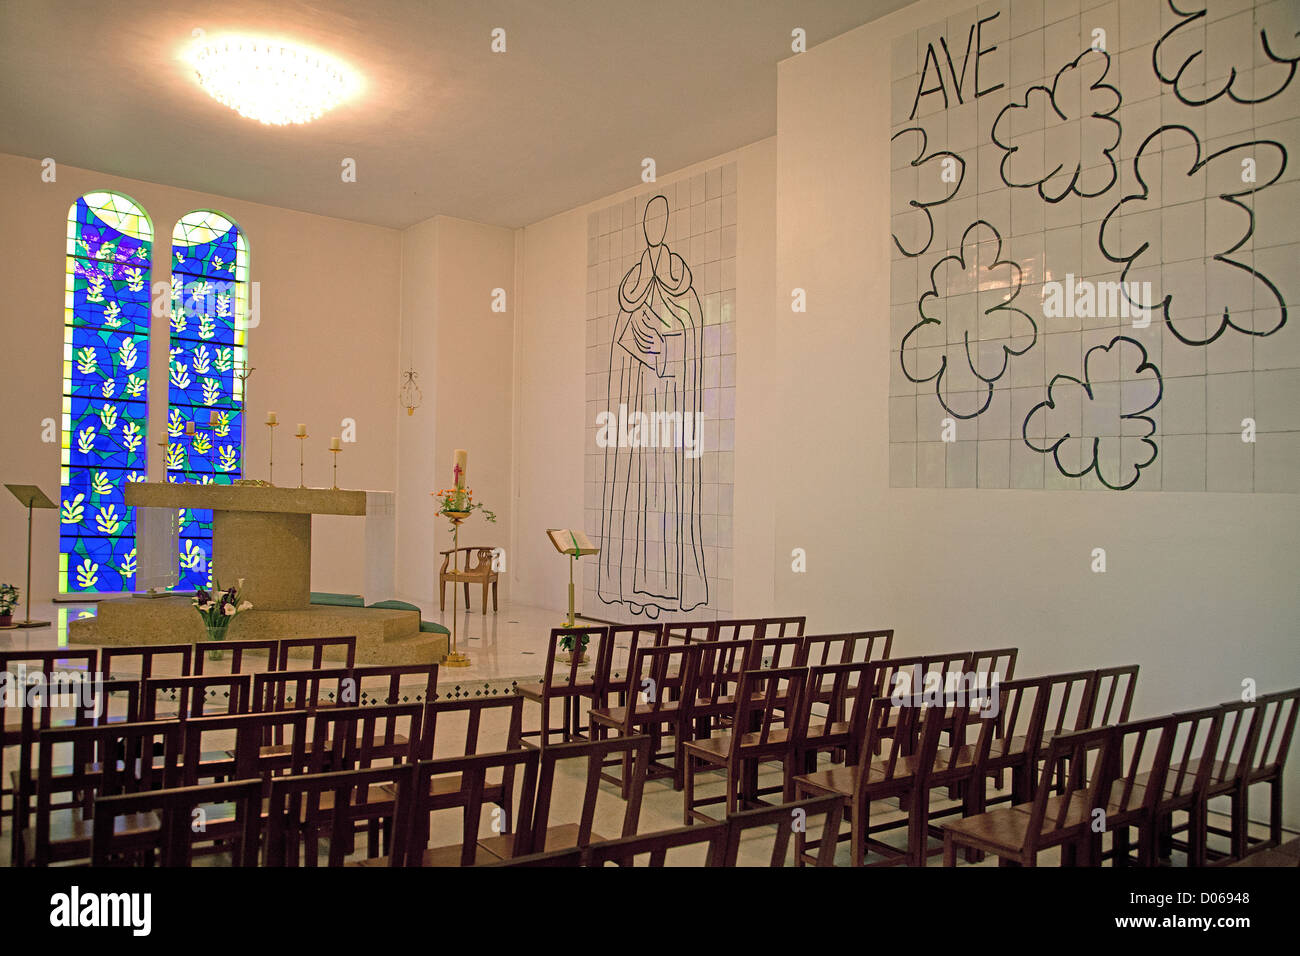 vence chapel matisse stockfotos vence chapel matisse bilder alamy. Black Bedroom Furniture Sets. Home Design Ideas